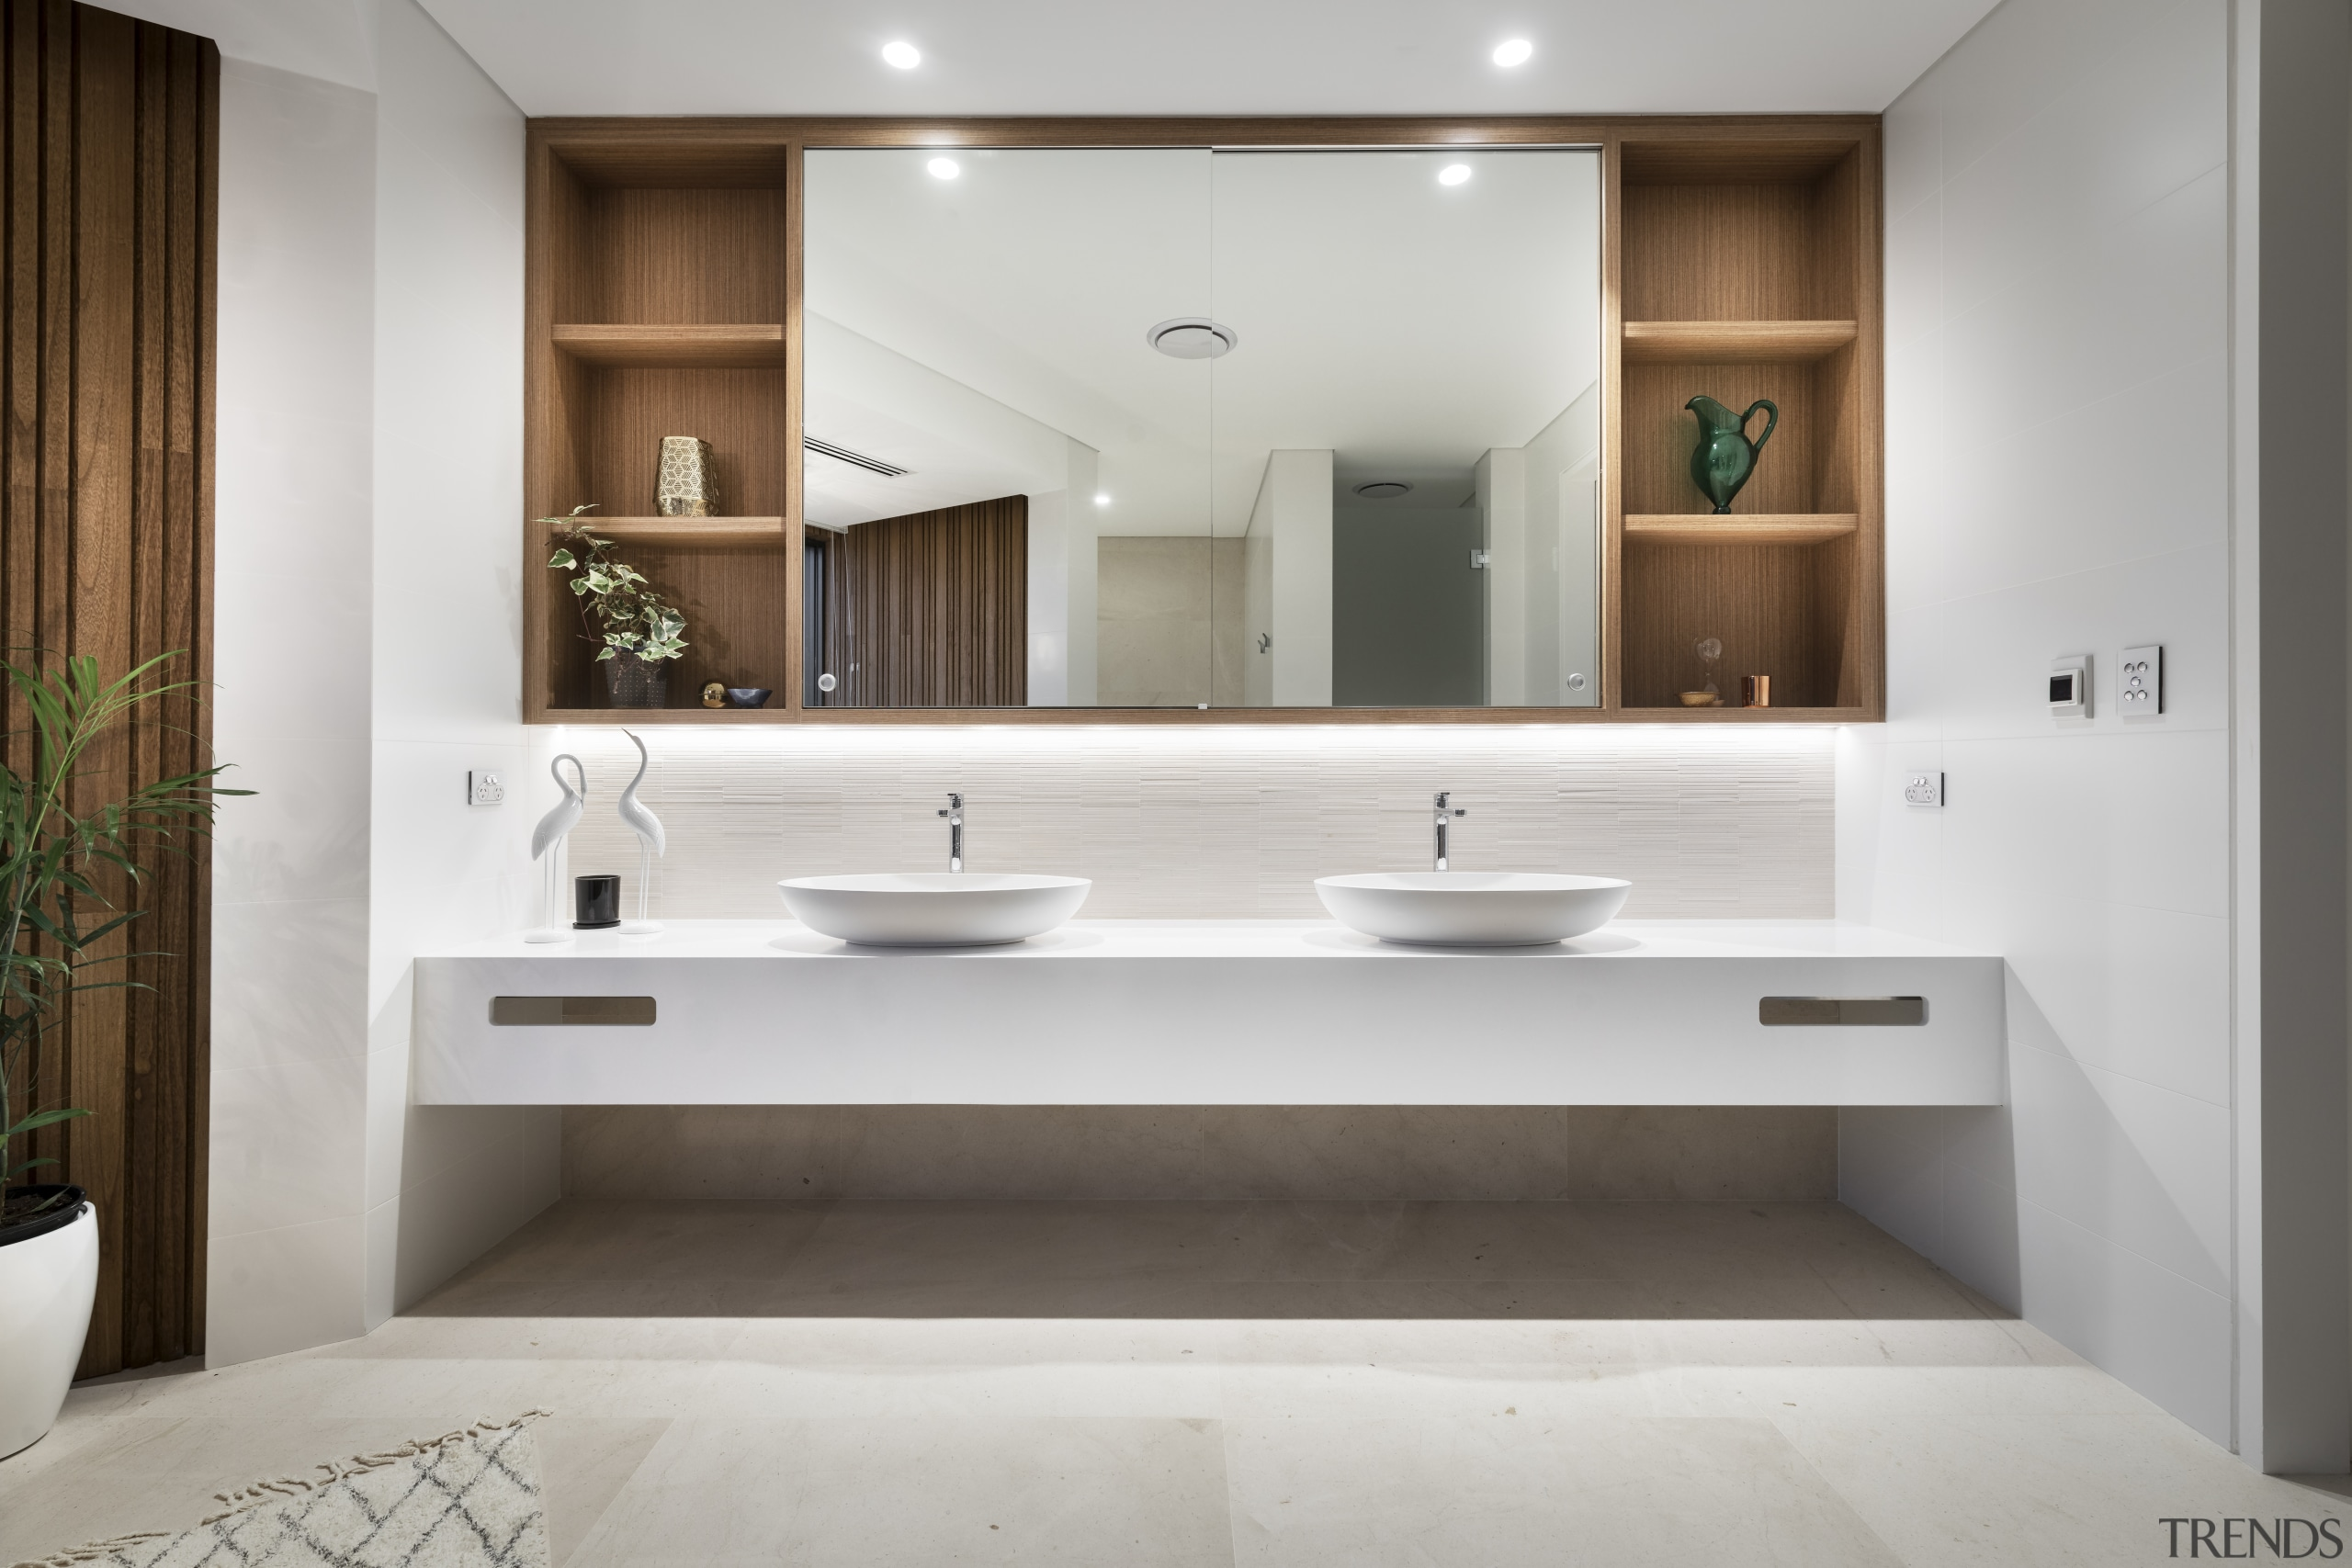 In one move to future-proof this master bathroom, gray